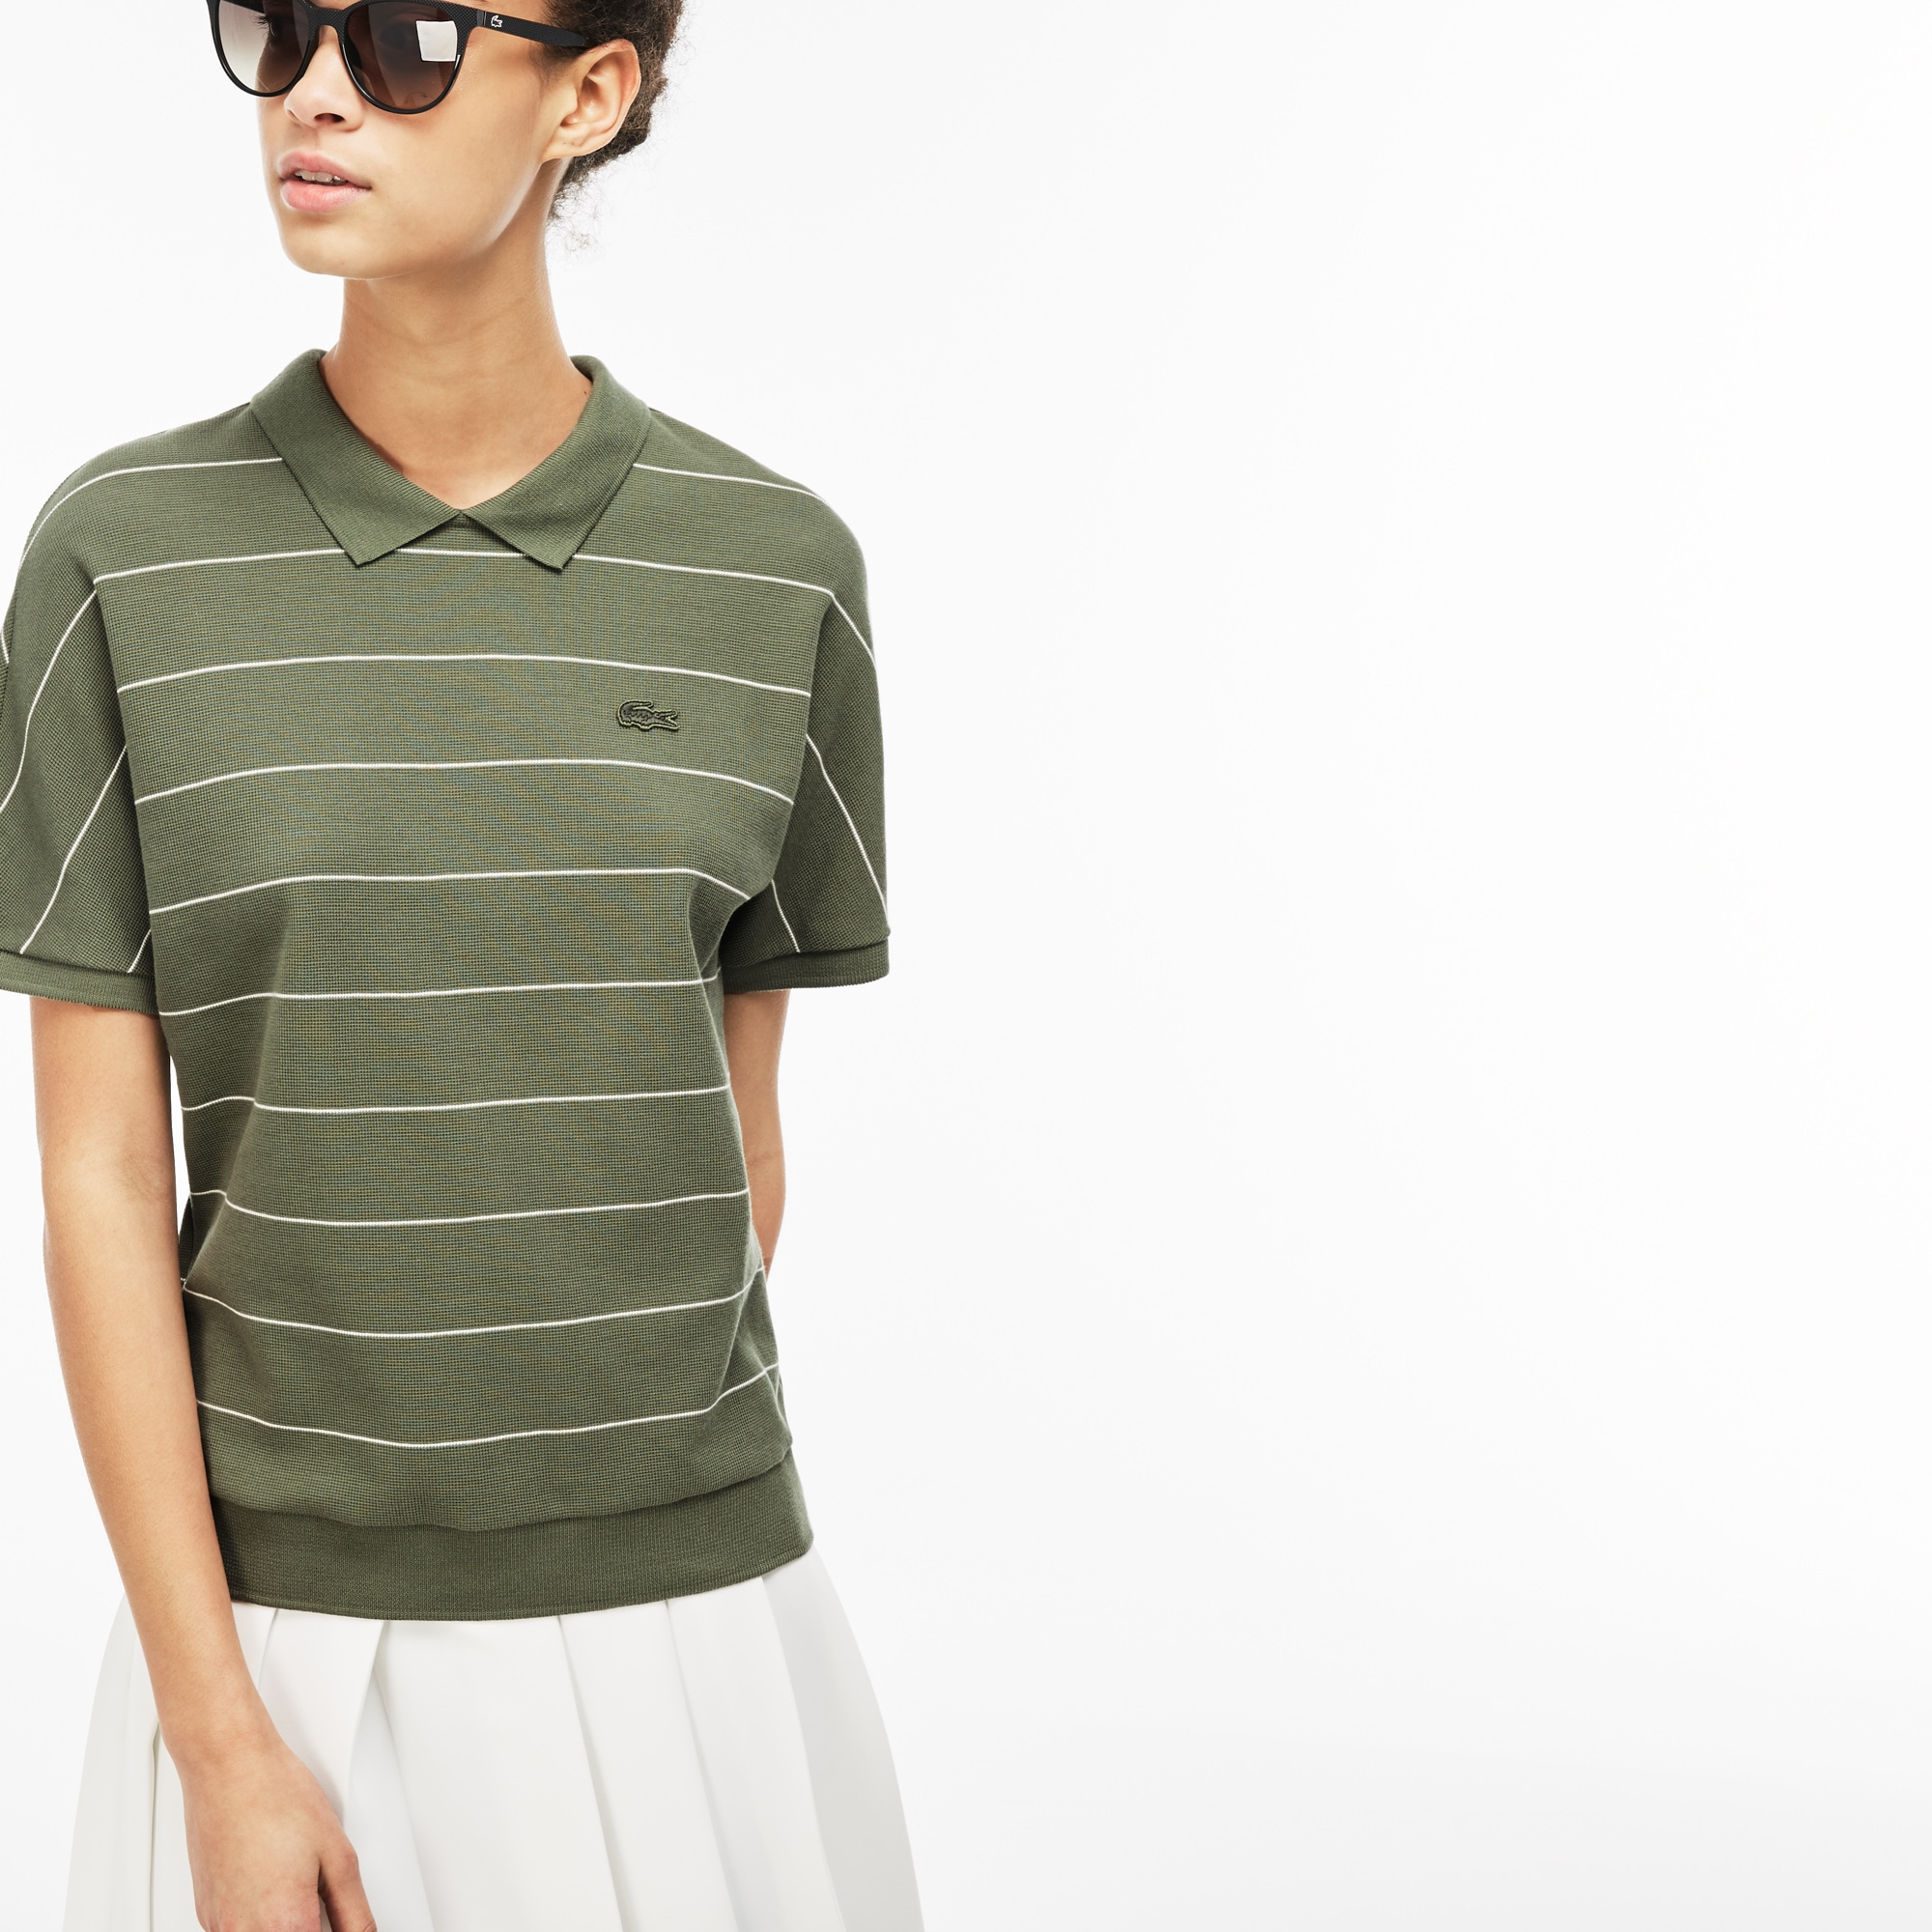 Women's Lacoste Finely Striped Cotton Honeycomb Polo